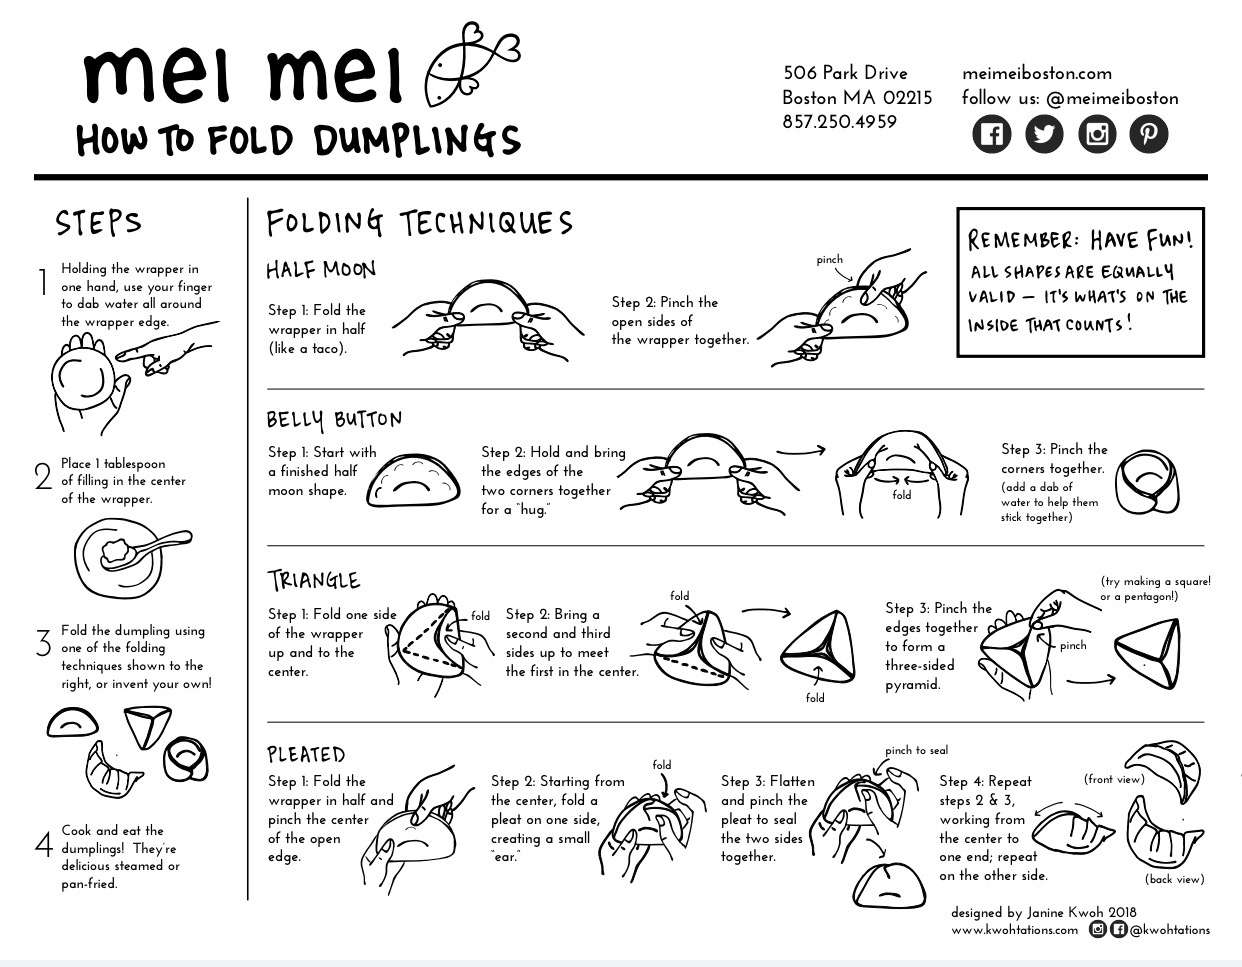 """How to Fold Dumplings"" Brochure created for  Mei Mei Restaurant , a sibling-run restaurant and food truck catering business in Boston serving up creative Chinese-American cuisine made from locally sourced and sustainable ingredients."